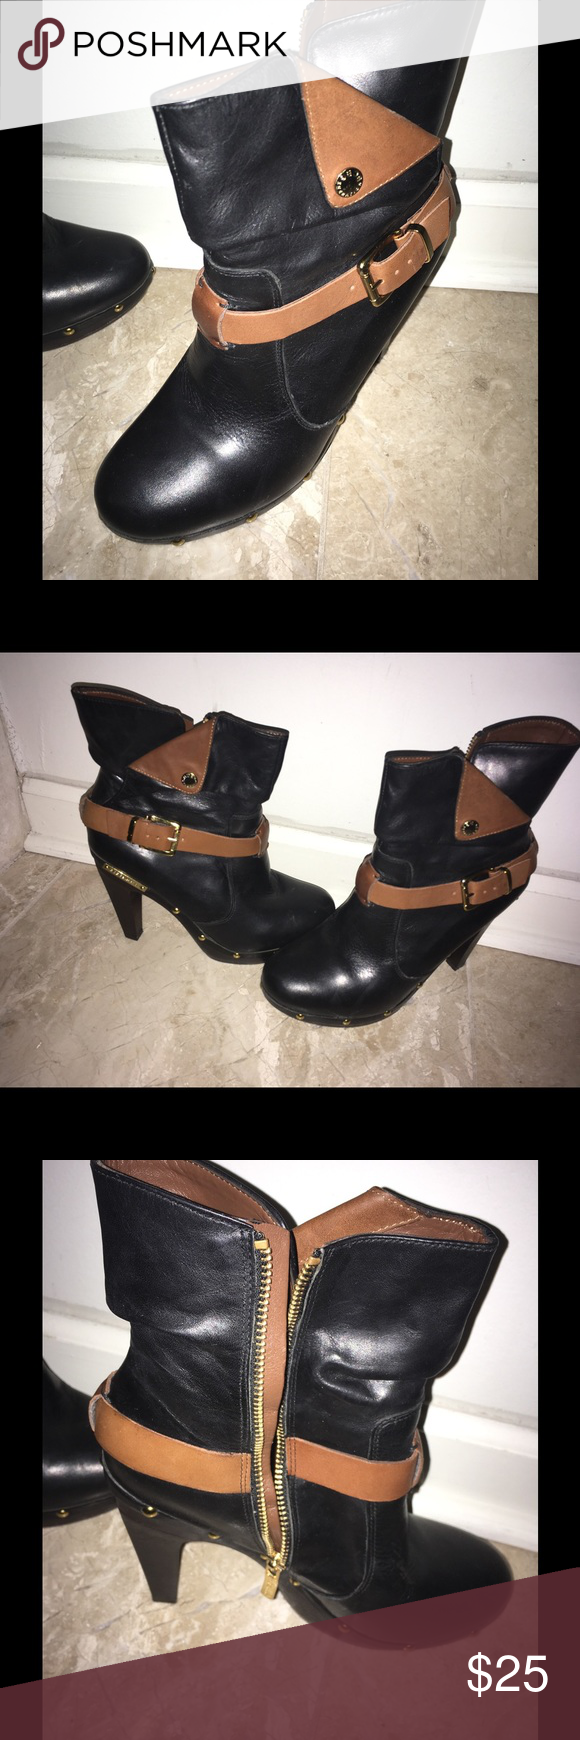 BCBG Boots Black and Tan BCBG boots with gold accents. 3 1/2 inch heel. 5 inch shaft. BCBG Shoes Heeled Boots